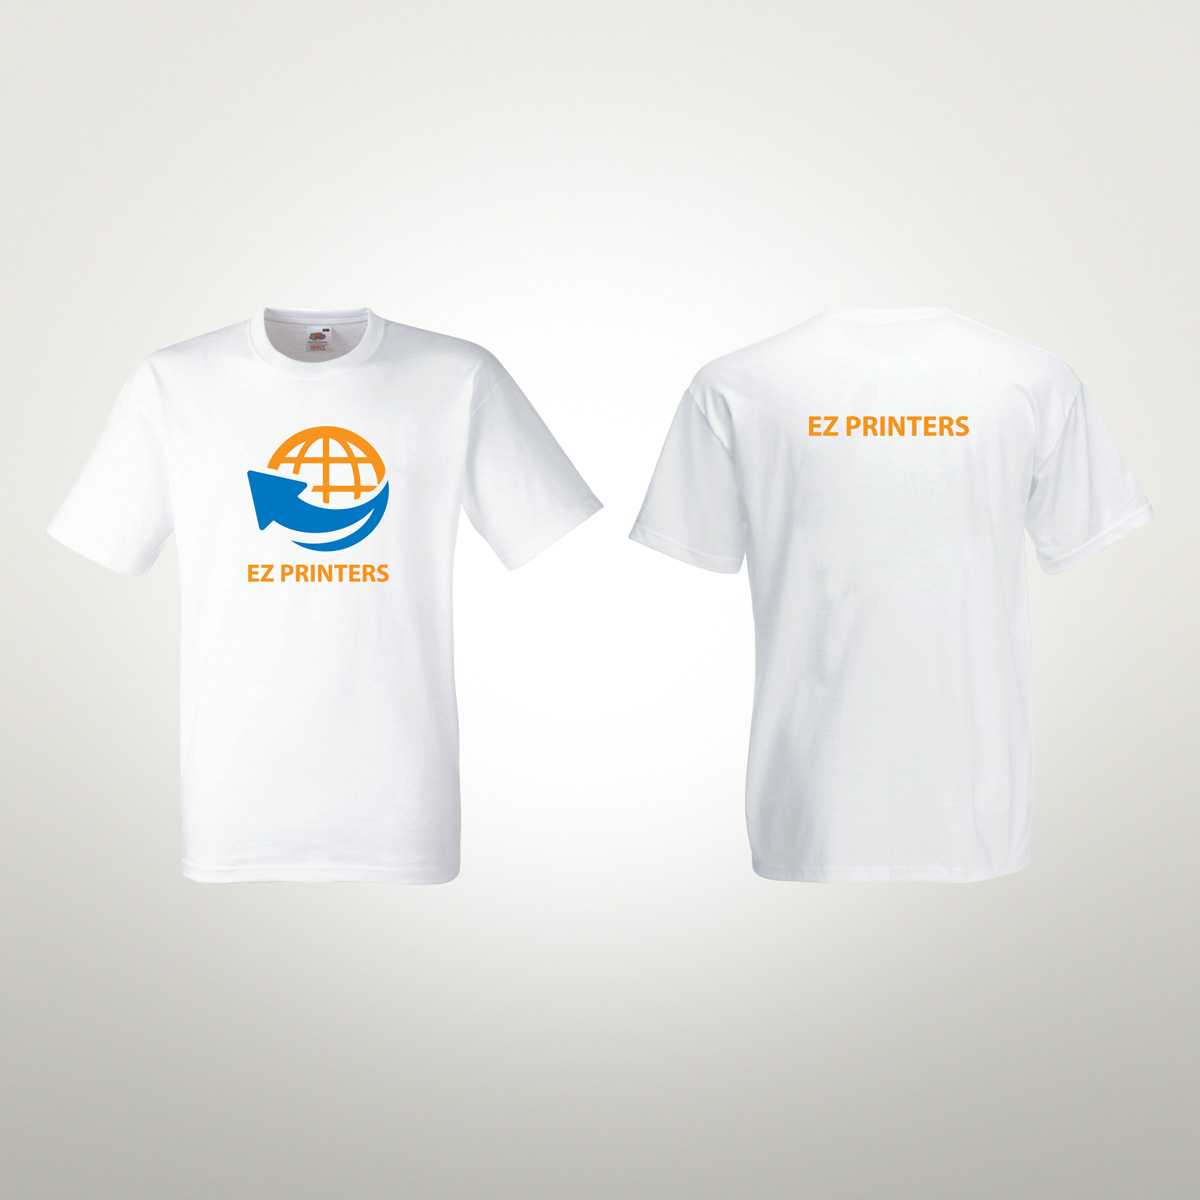 abf4af13 Personalised T-Shirt | Cheap T-shirts Printing London | ez printers